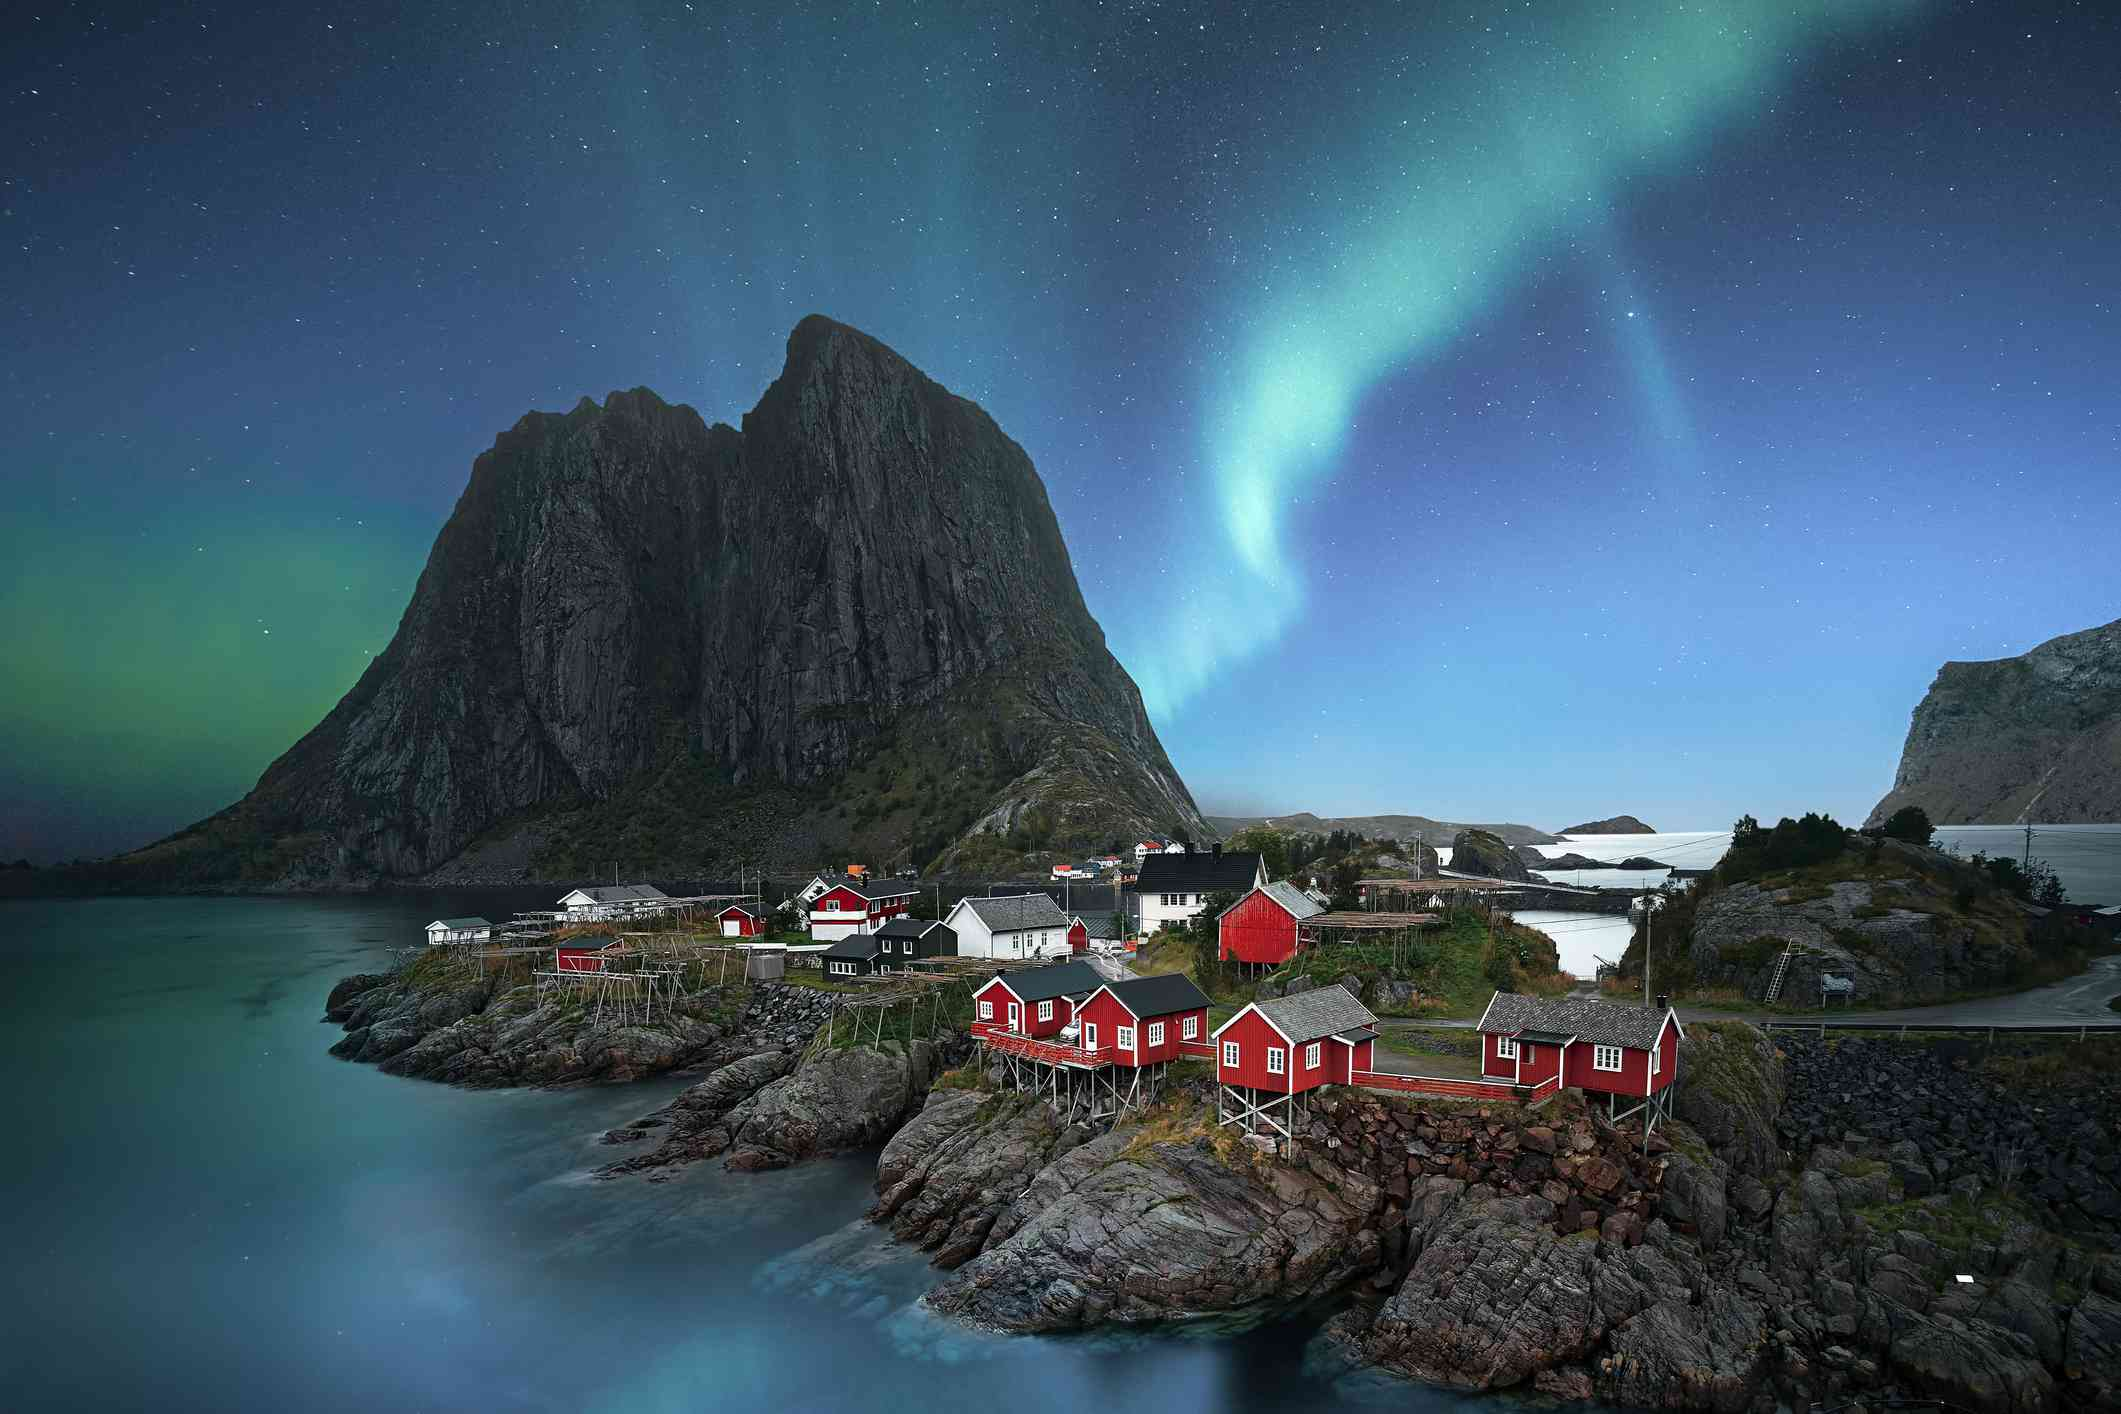 Northern lights appearing at dawn over small village in Norway